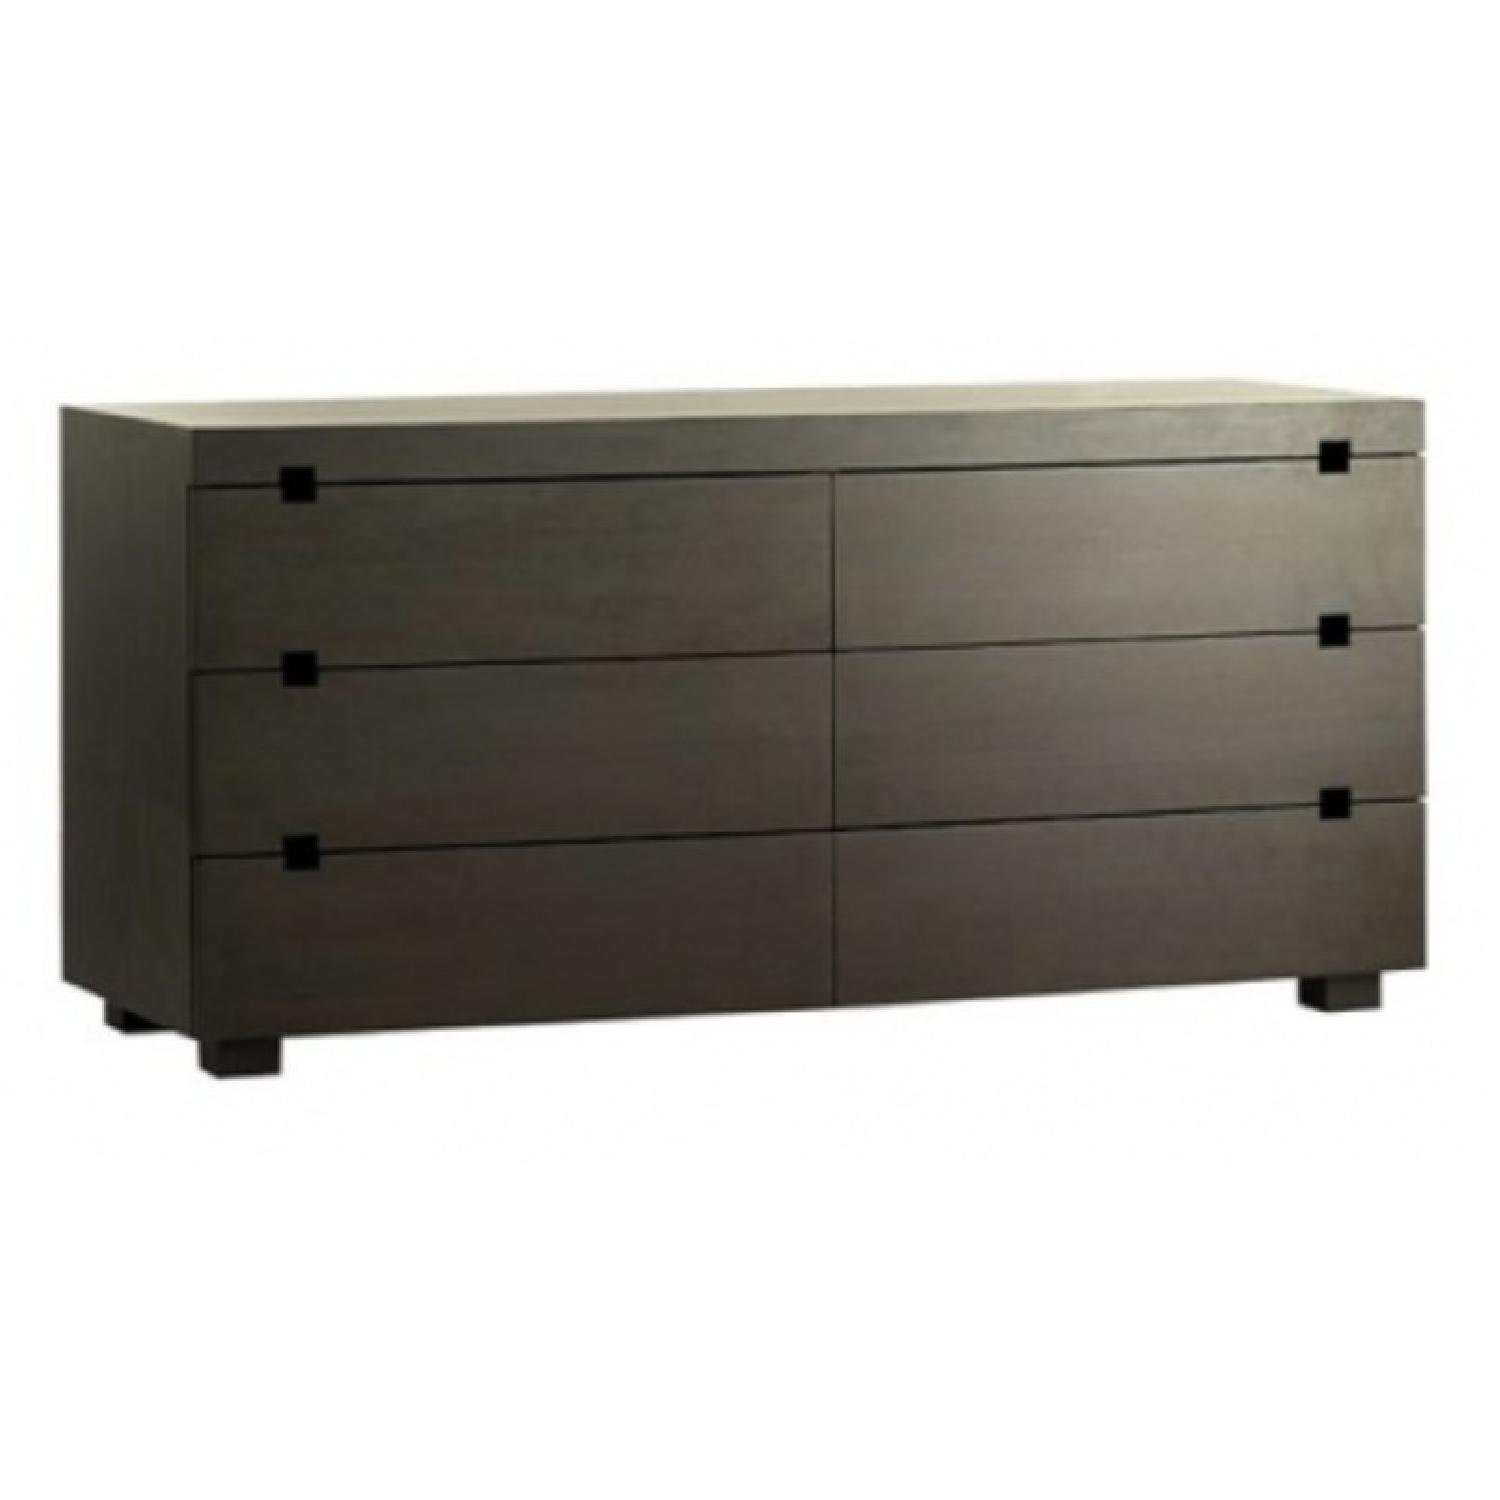 West Elm Chocolate Square Cutout 6 Drawer Dresser